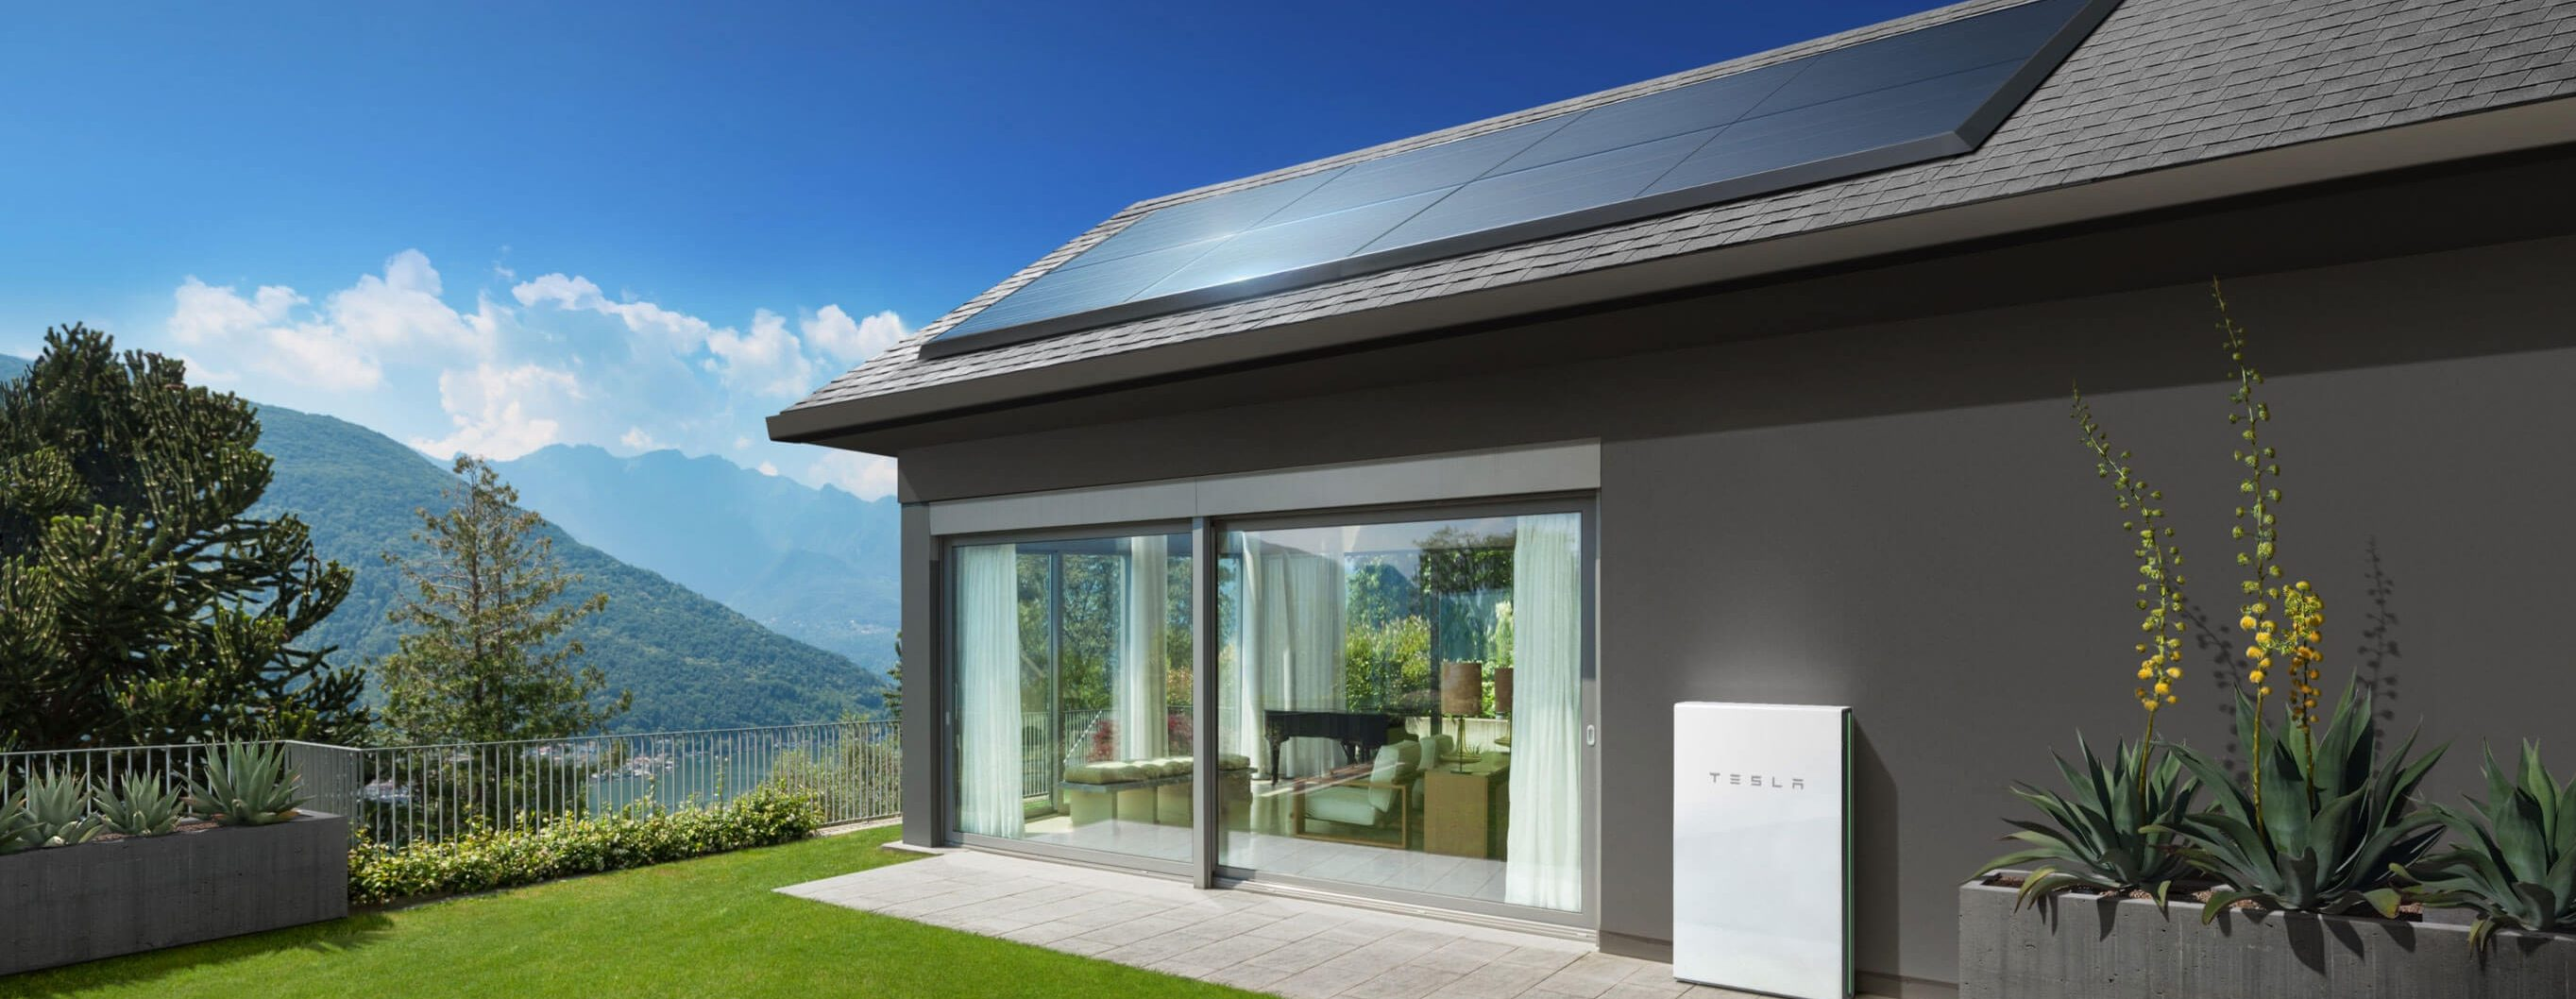 Tesla Announced New Low Profile Rooftop Solar Panels For